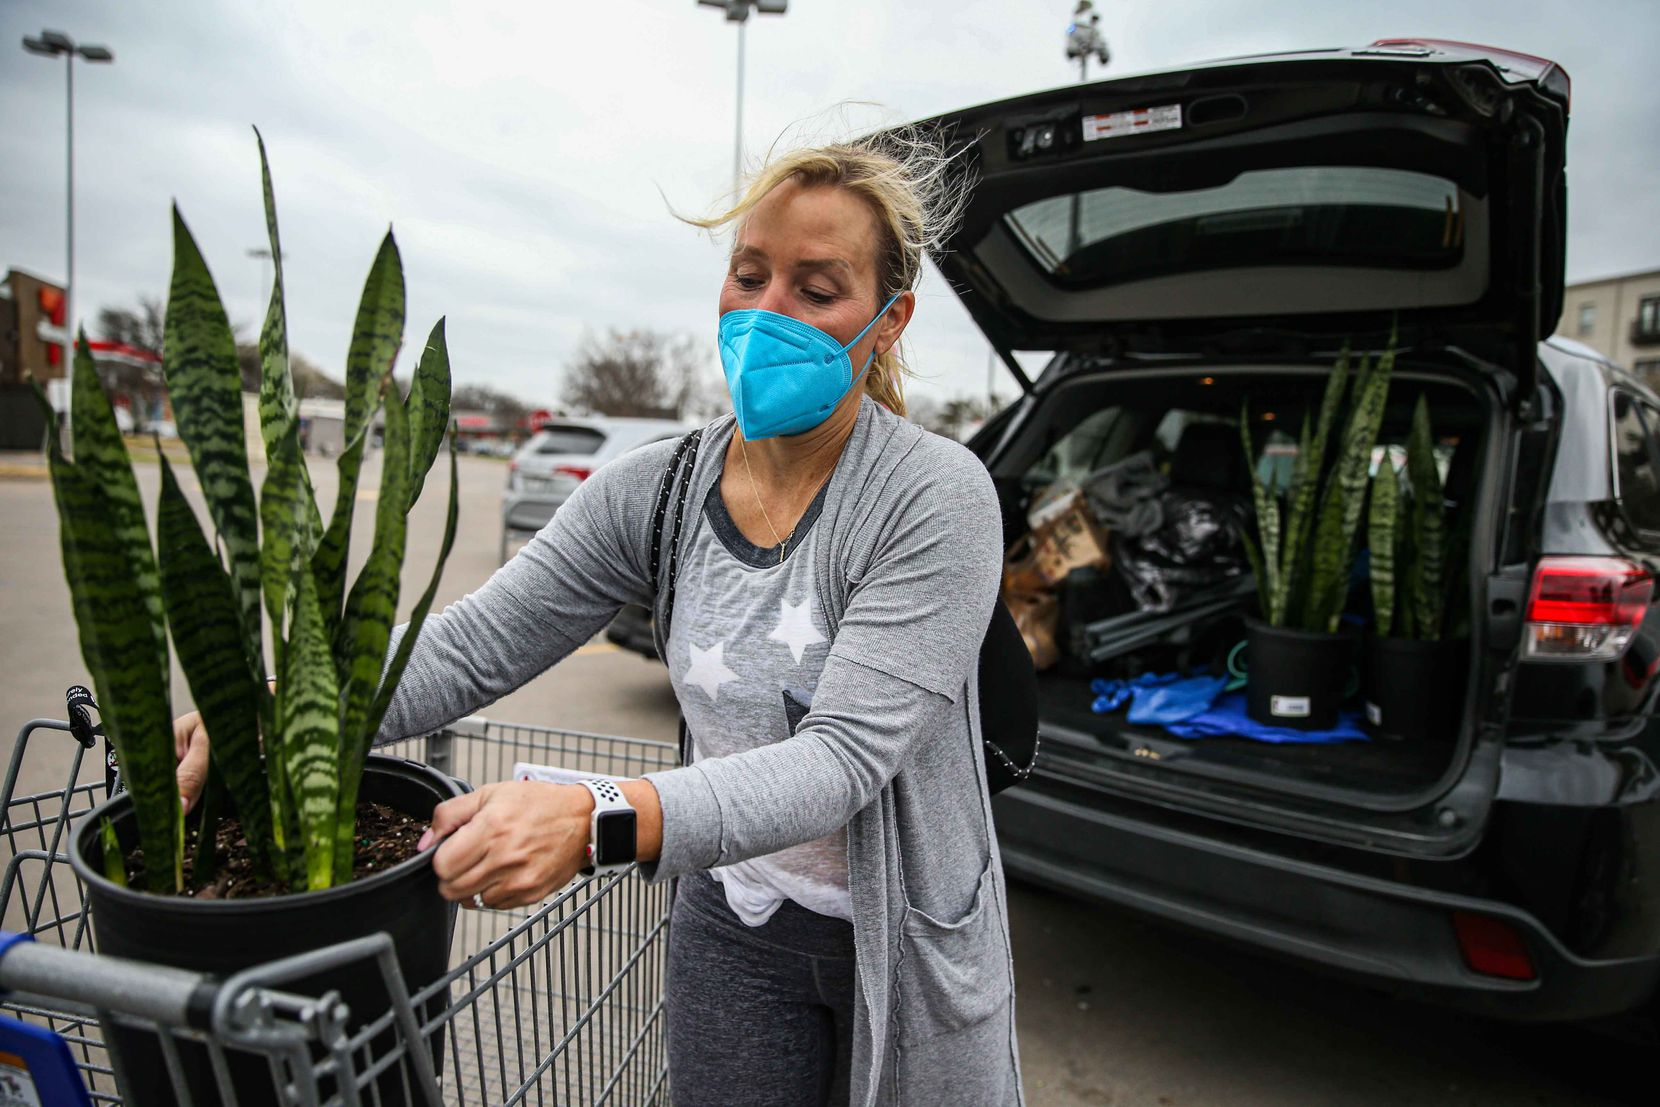 Diana Rodgers, 48, wears a mask as she unloads new plants she bought at Kroger in Dallas into her SUV on Wednesday.